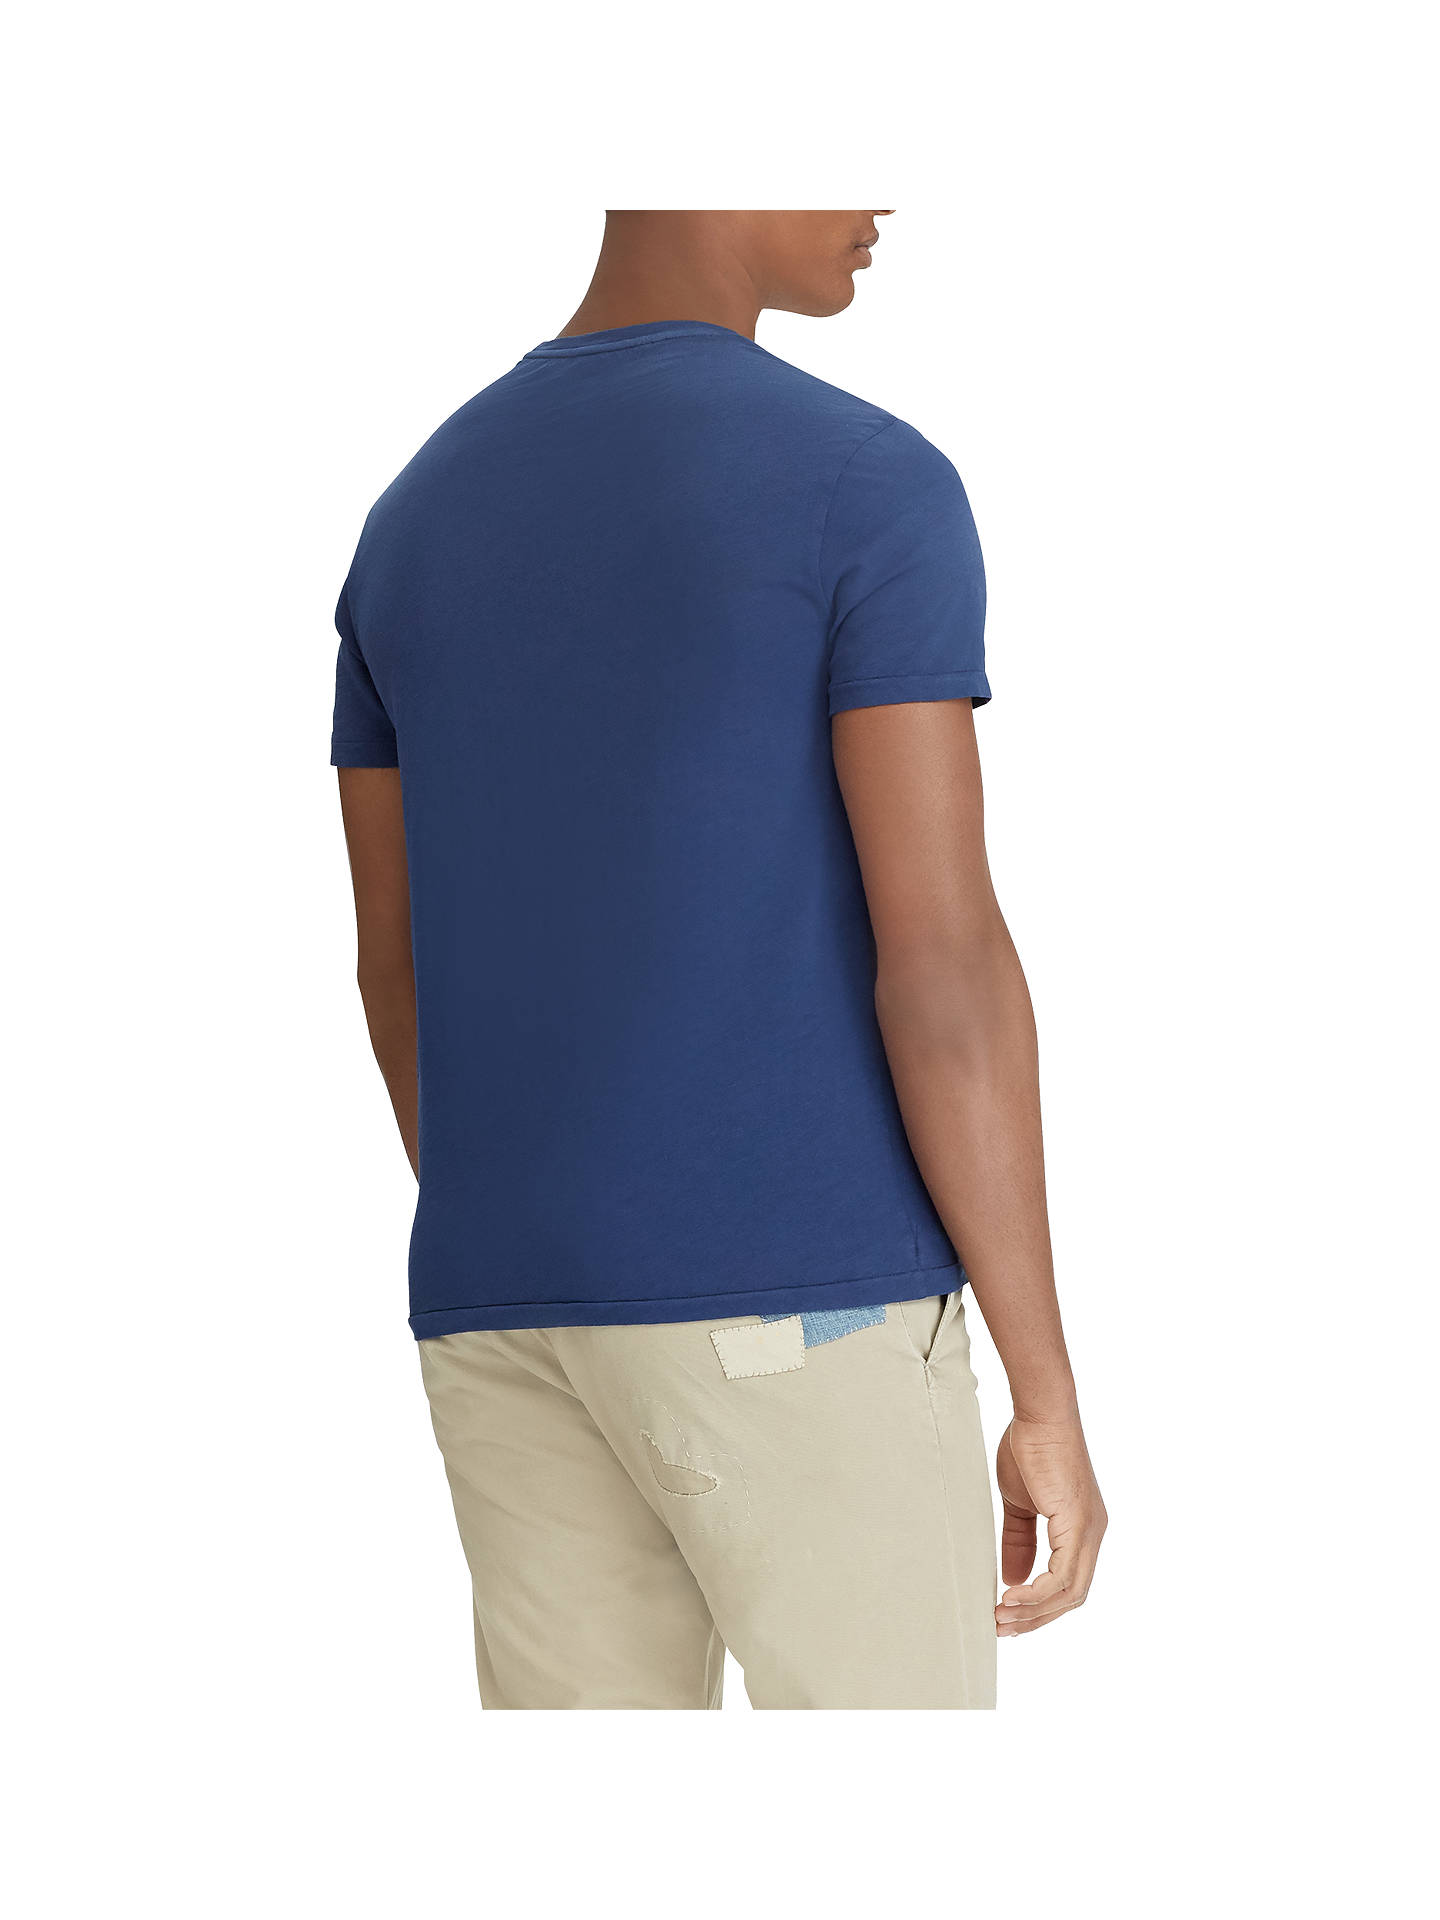 BuyPolo Ralph Lauren Crew Neck Graphic T-Shirt, Newport Navy, S Online at johnlewis.com